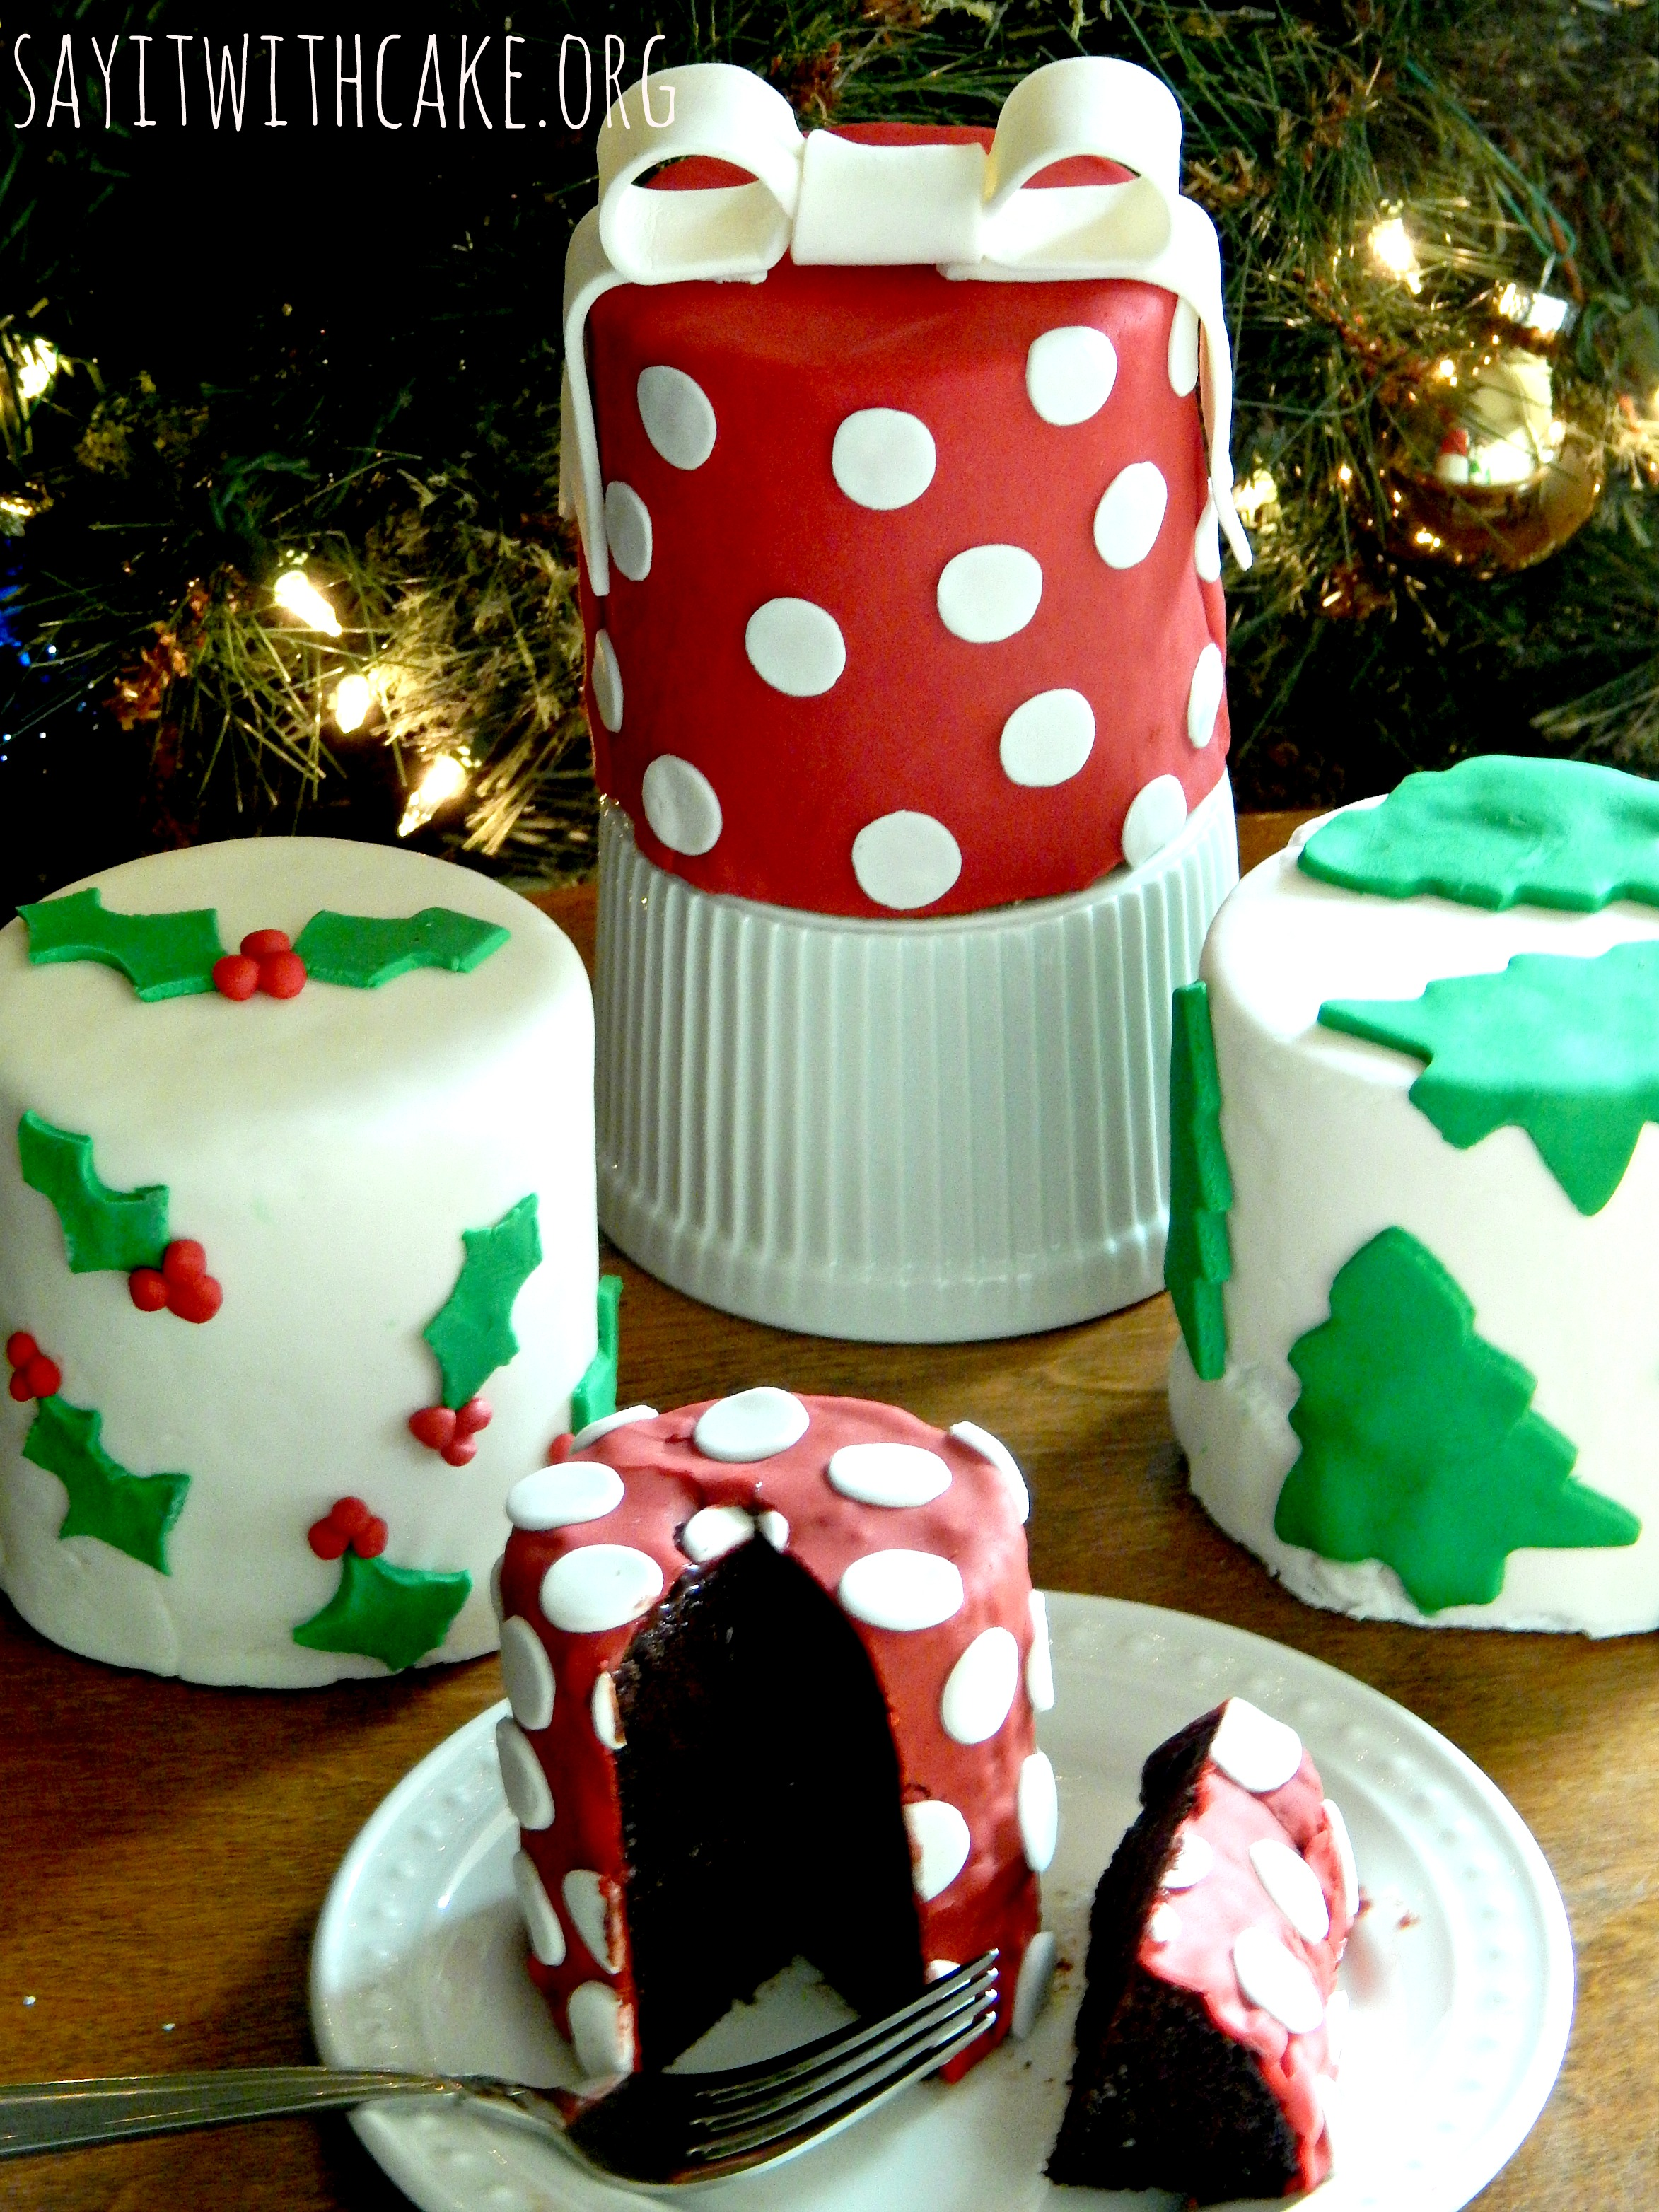 How to make christmas cake - Keep Reading And I Will Show You How To Make These Mini Cakes Step By Step Christmas Cakes